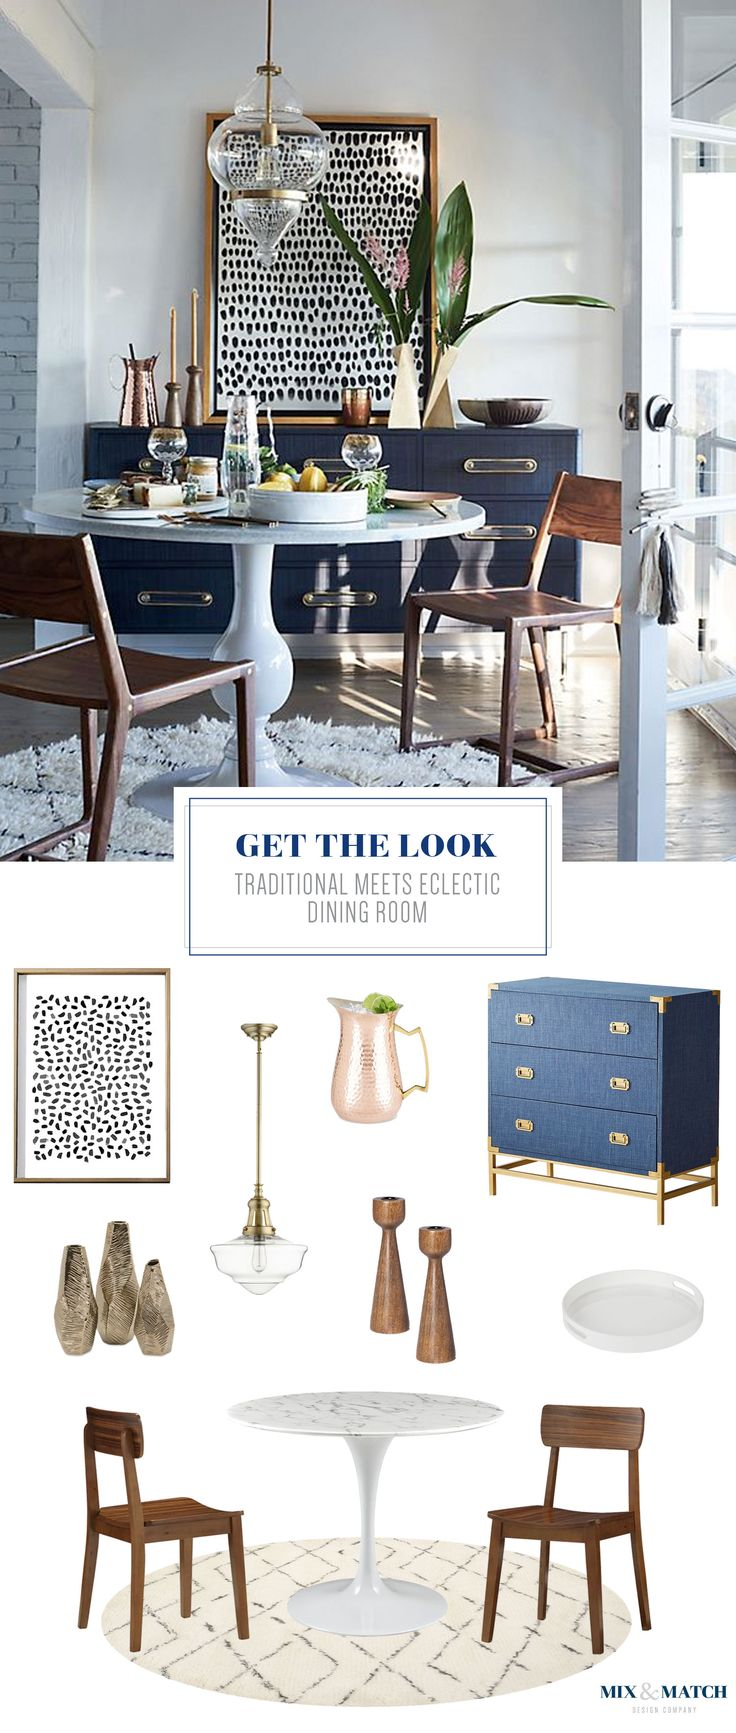 Get The Look Traditional Meets Eclectic Dining Room